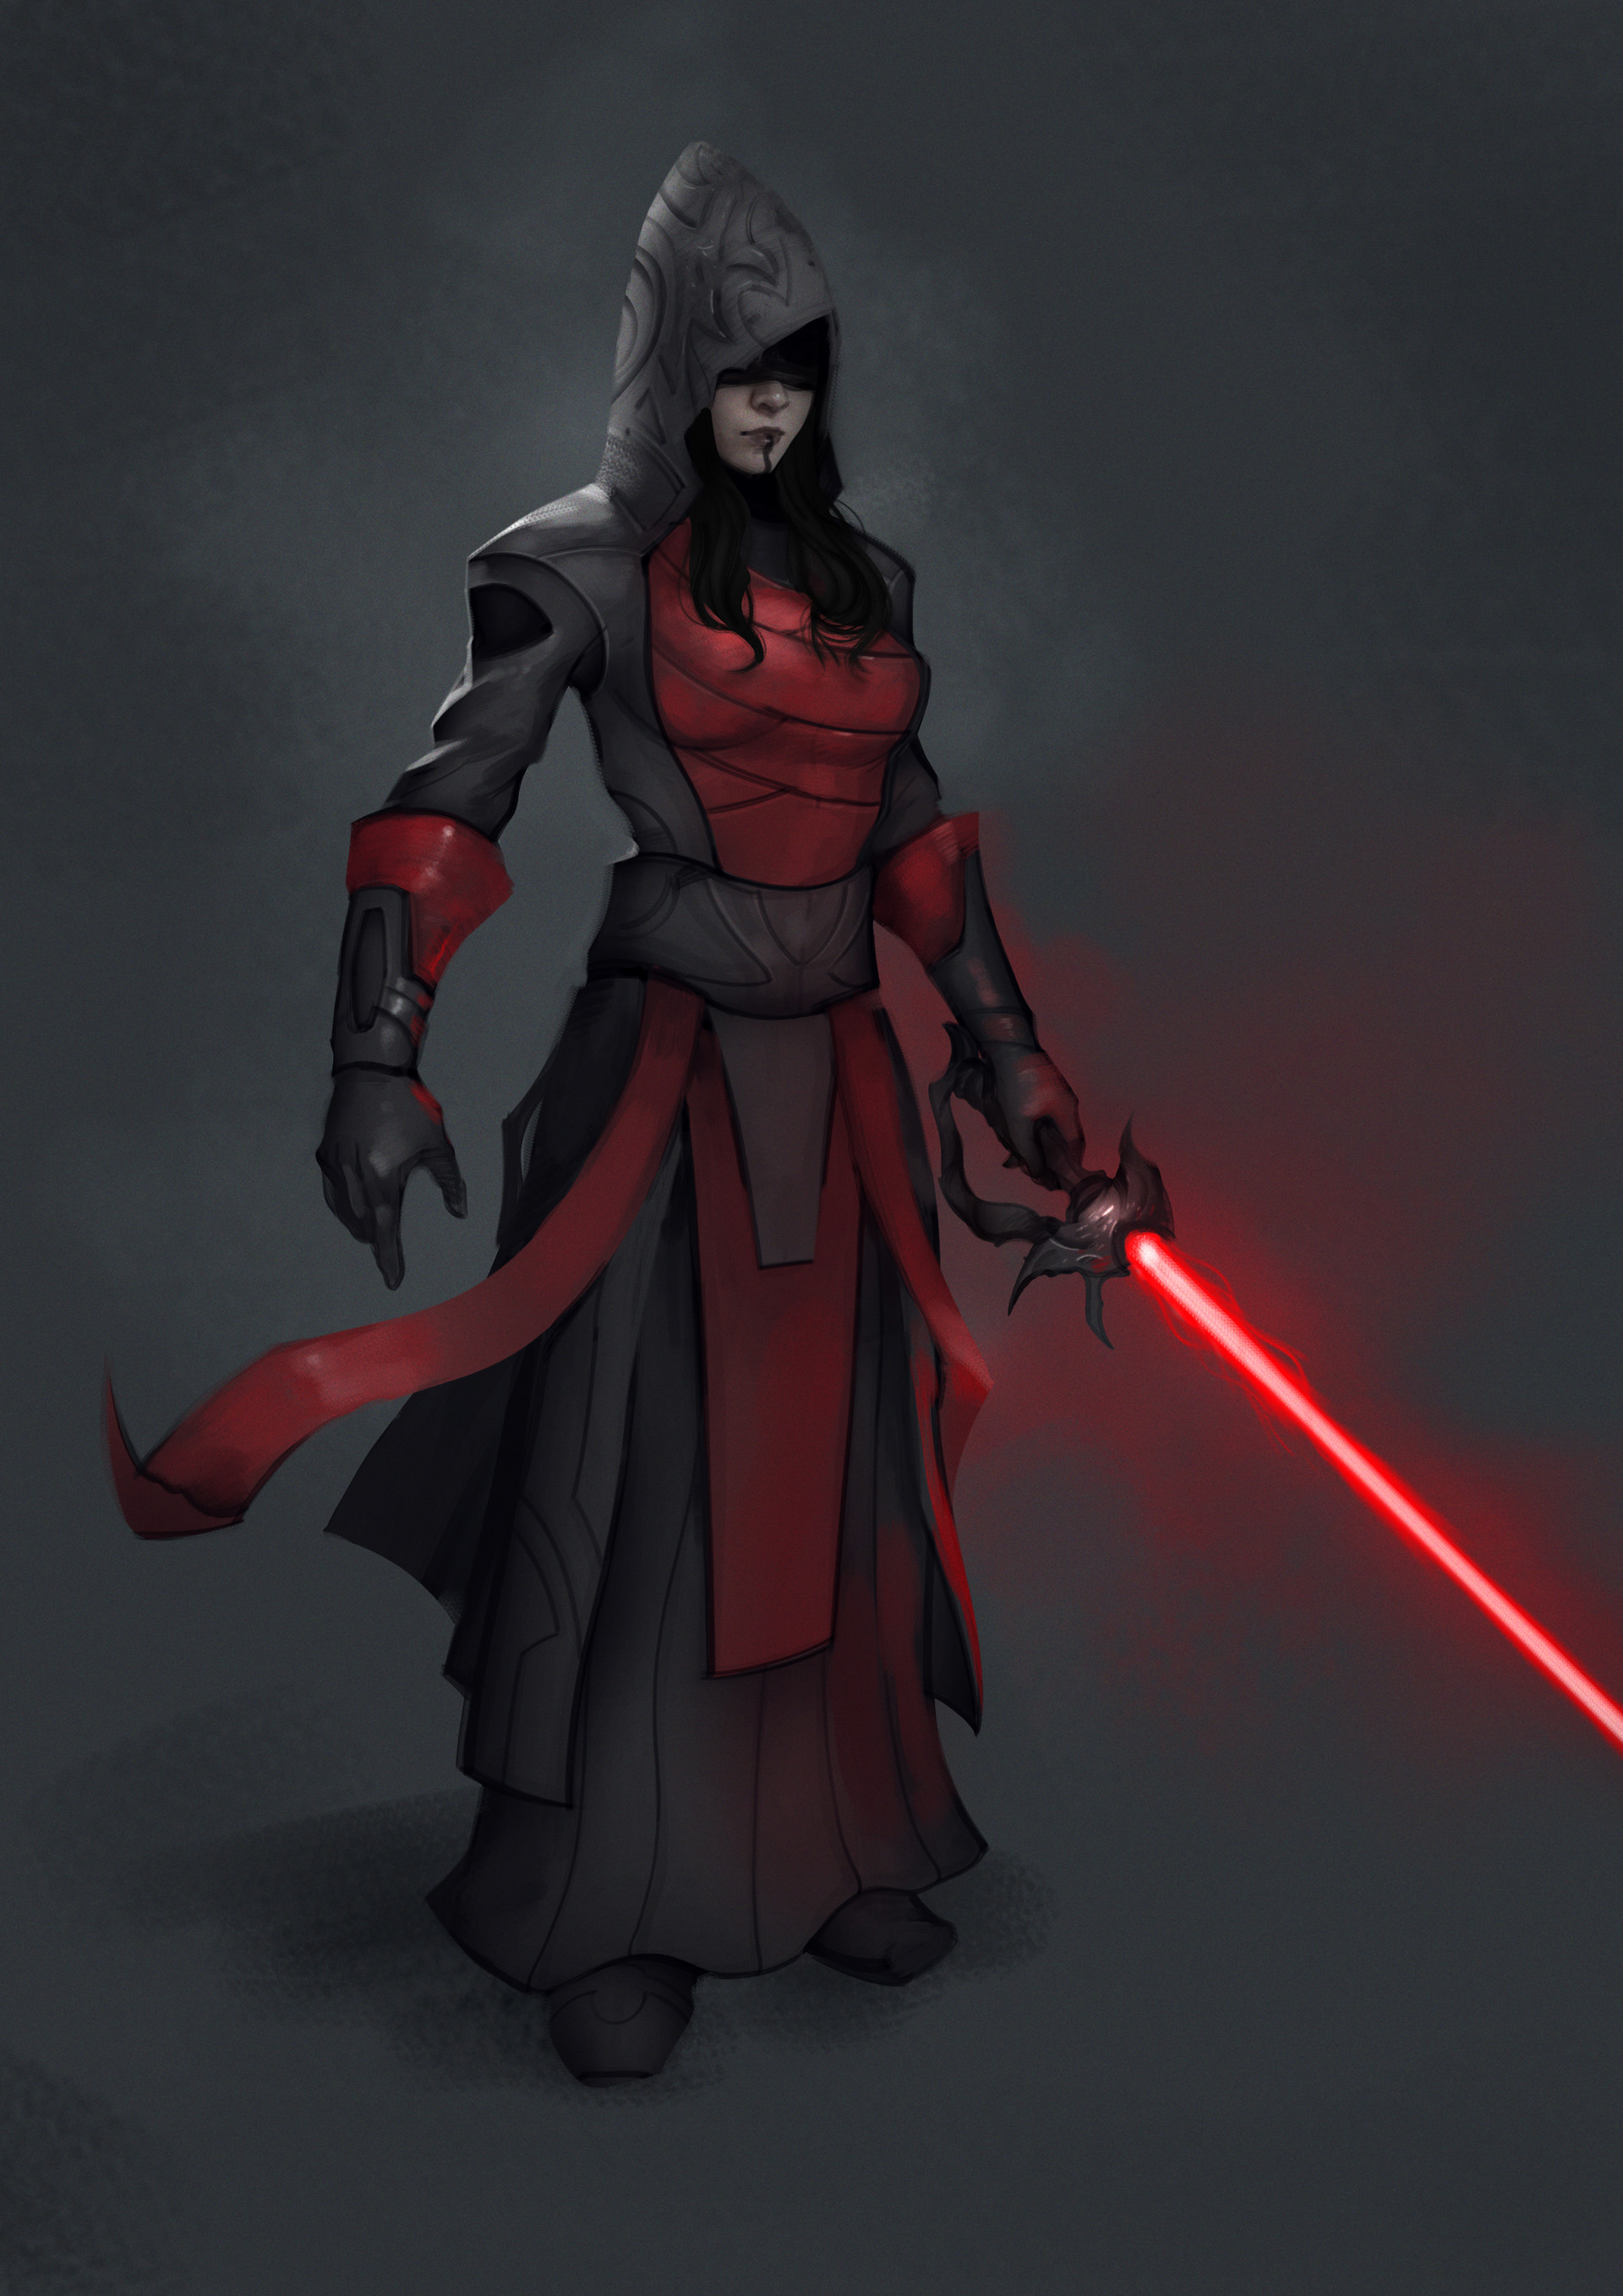 SWTOR: Sith Juggernaut by maqeurious on DeviantArt